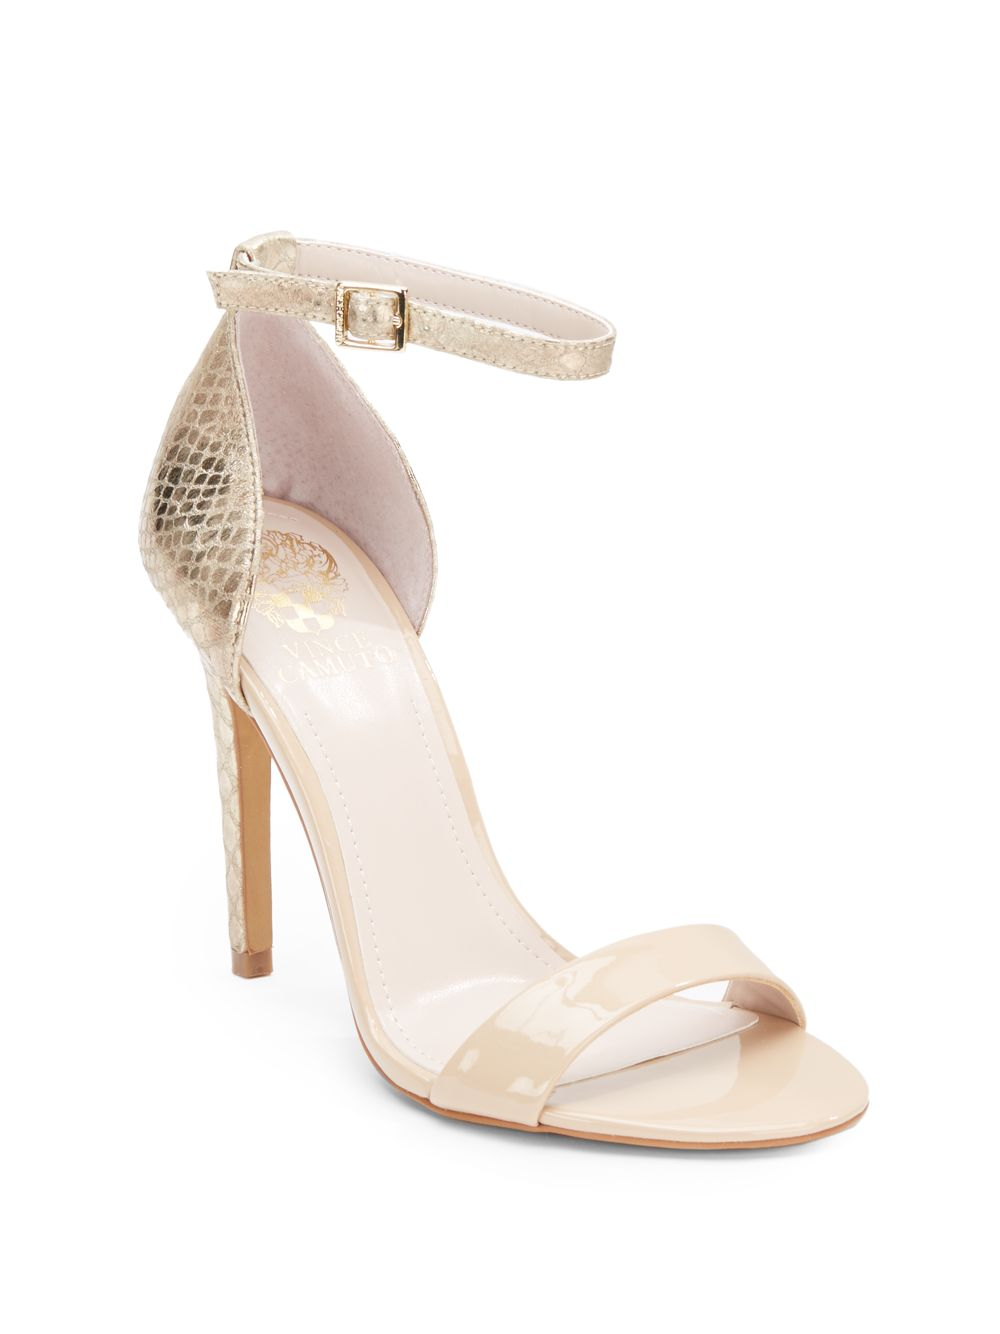 82f8a18ef45 Lyst - Vince Camuto Allison High-Heel Sandals in Metallic